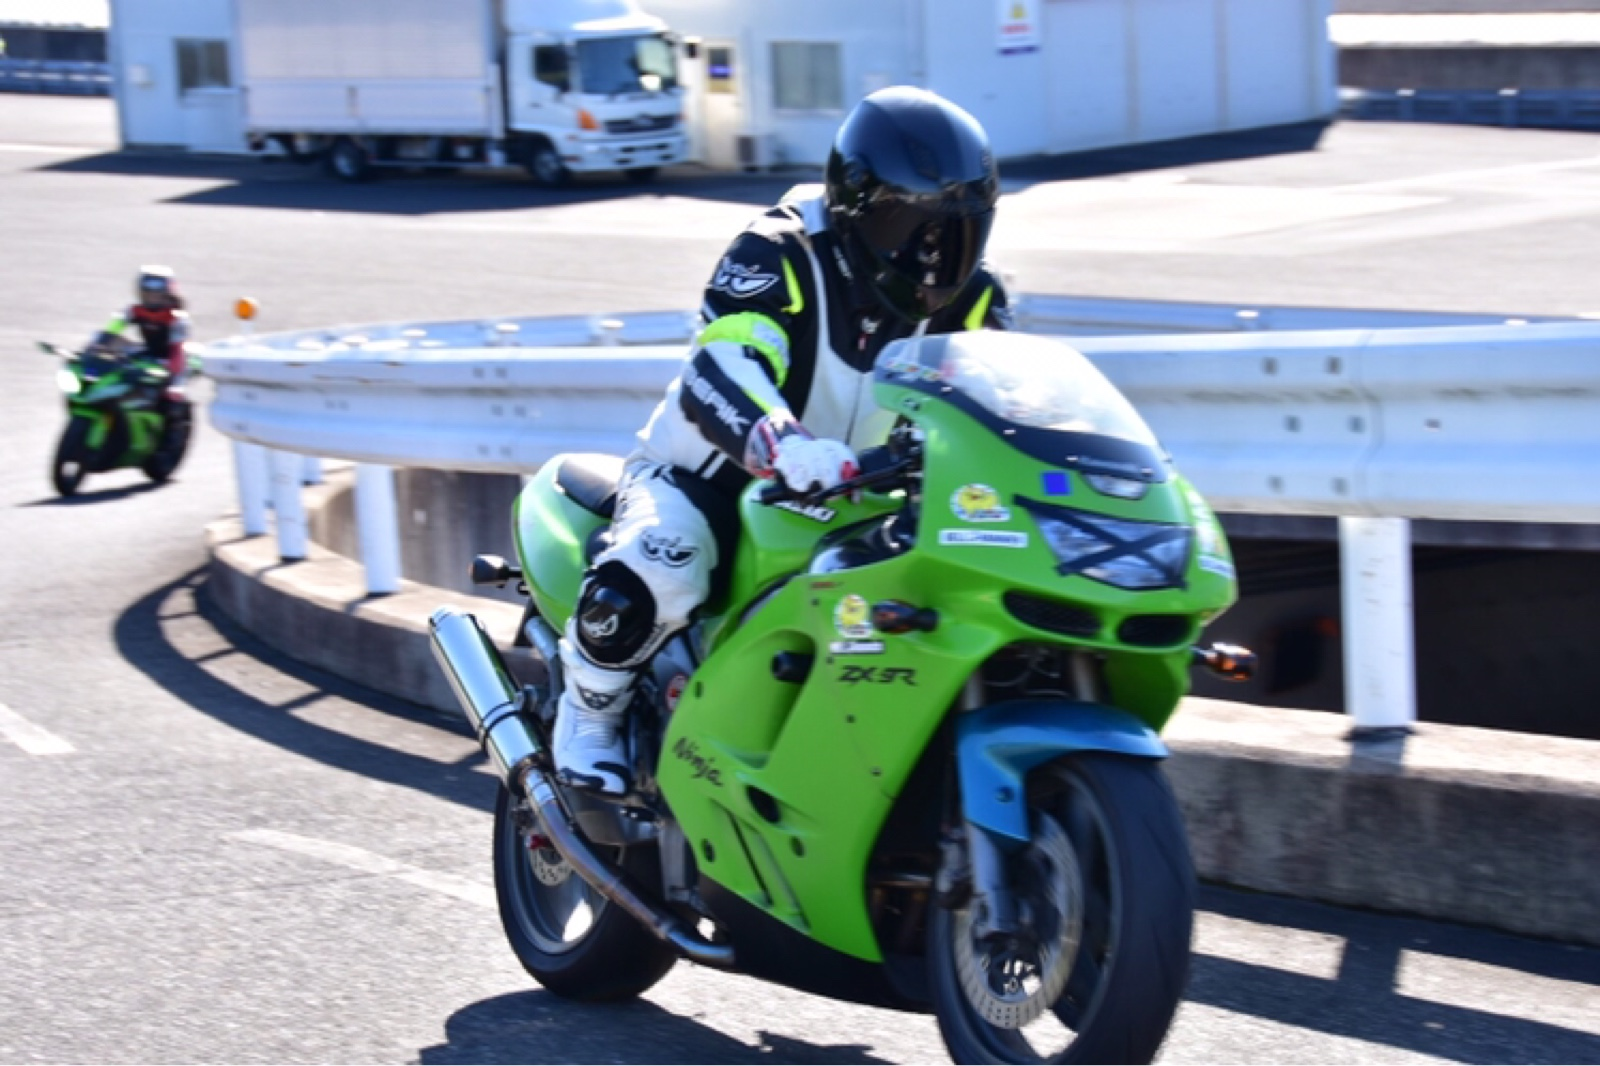 takeshi.さんのZX-9R B型